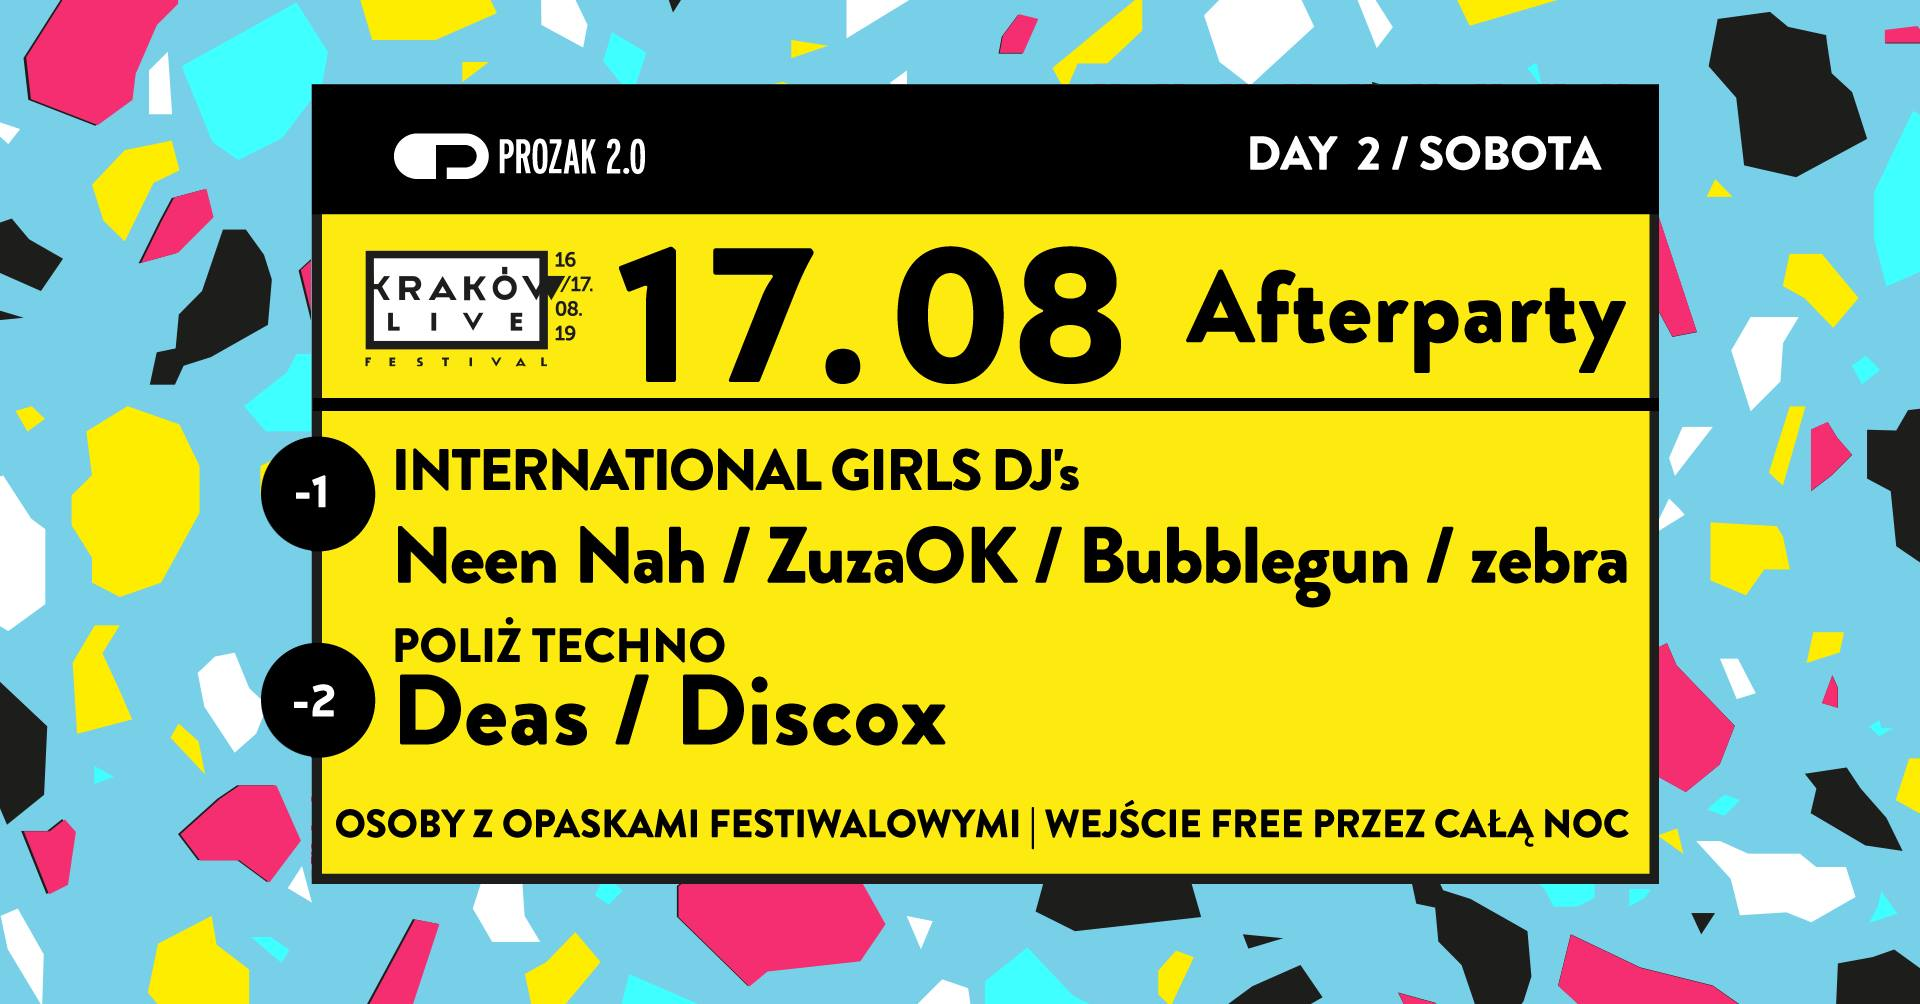 Kraków Live Festival 2019 Official Afterparty Day 2